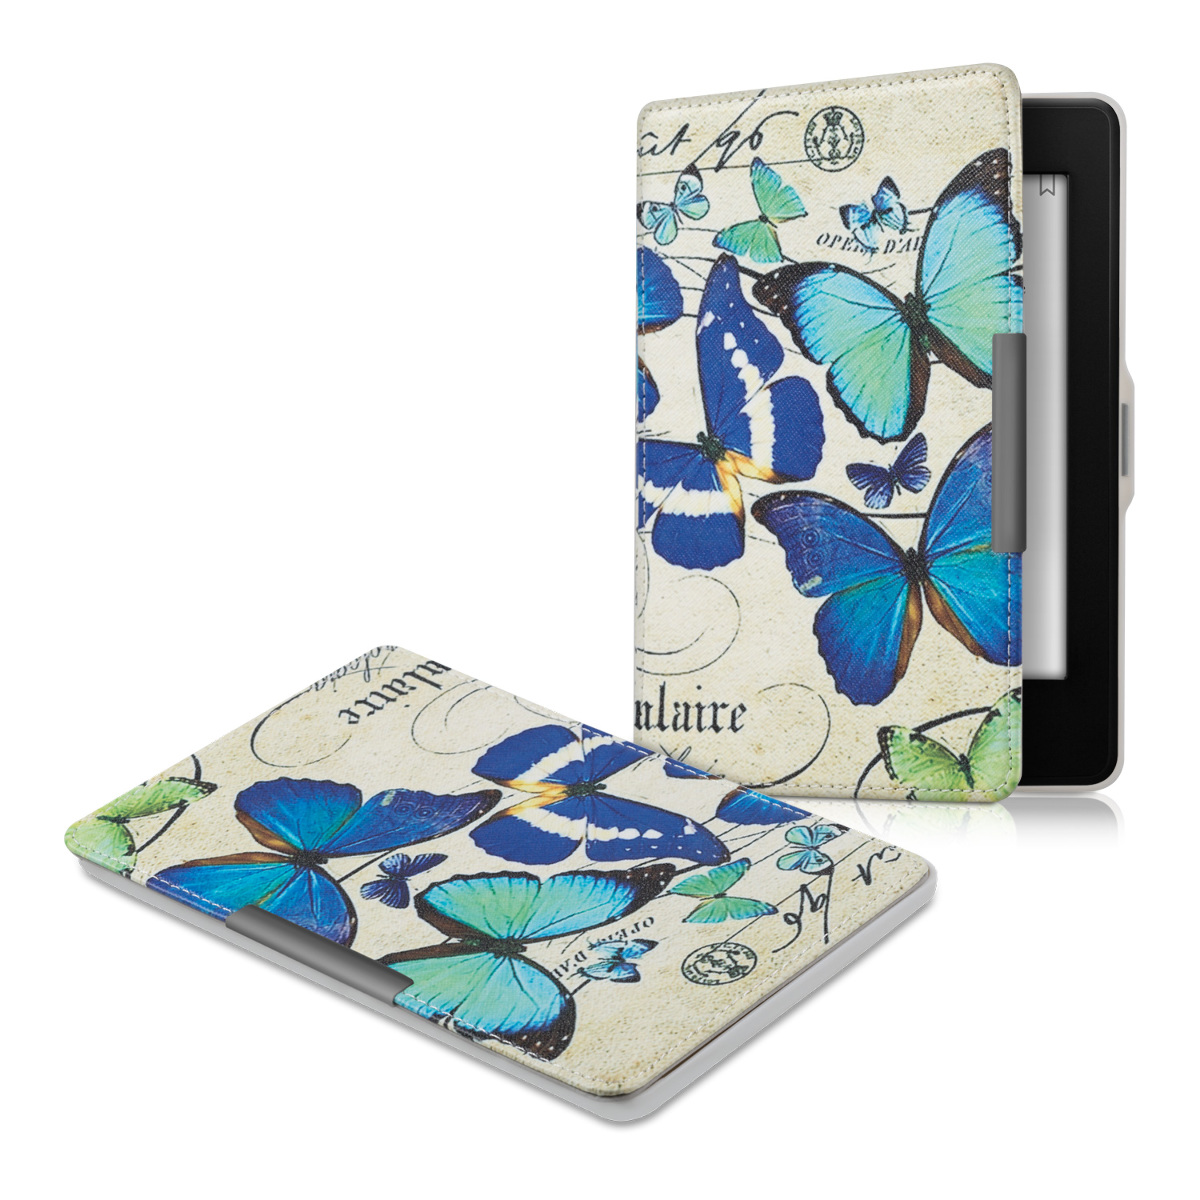 kwmobile LEATHER FLIP COVER FOR AMAZON KINDLE PAPERWHITE (2012 / 2013 / 2014)